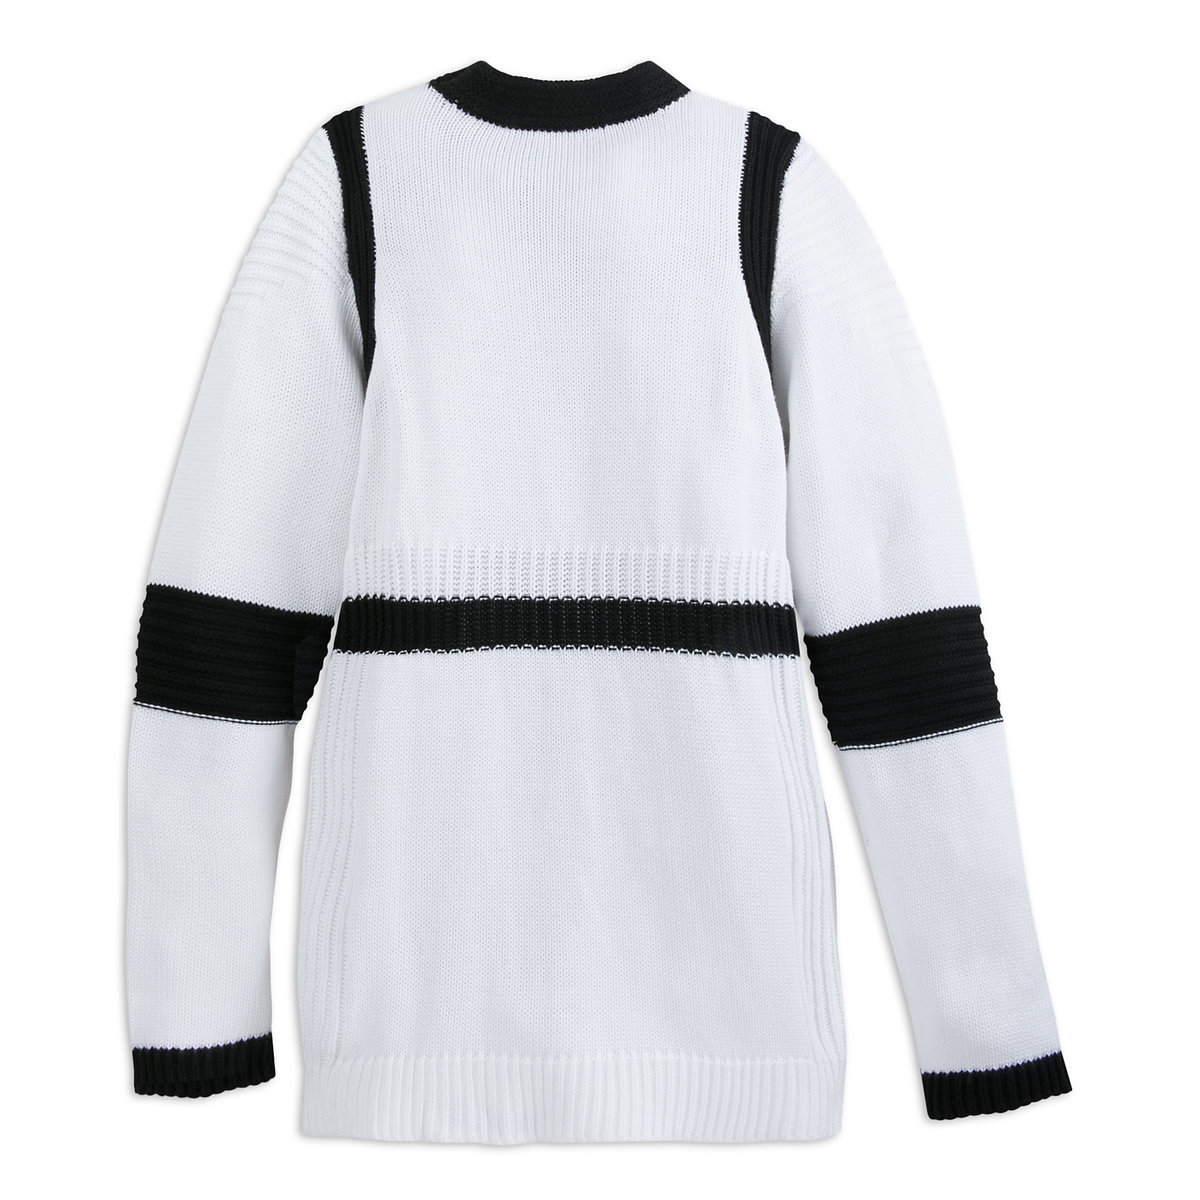 Stormtrooper Pullover Sweater for Women by Her Universe | shopDisney